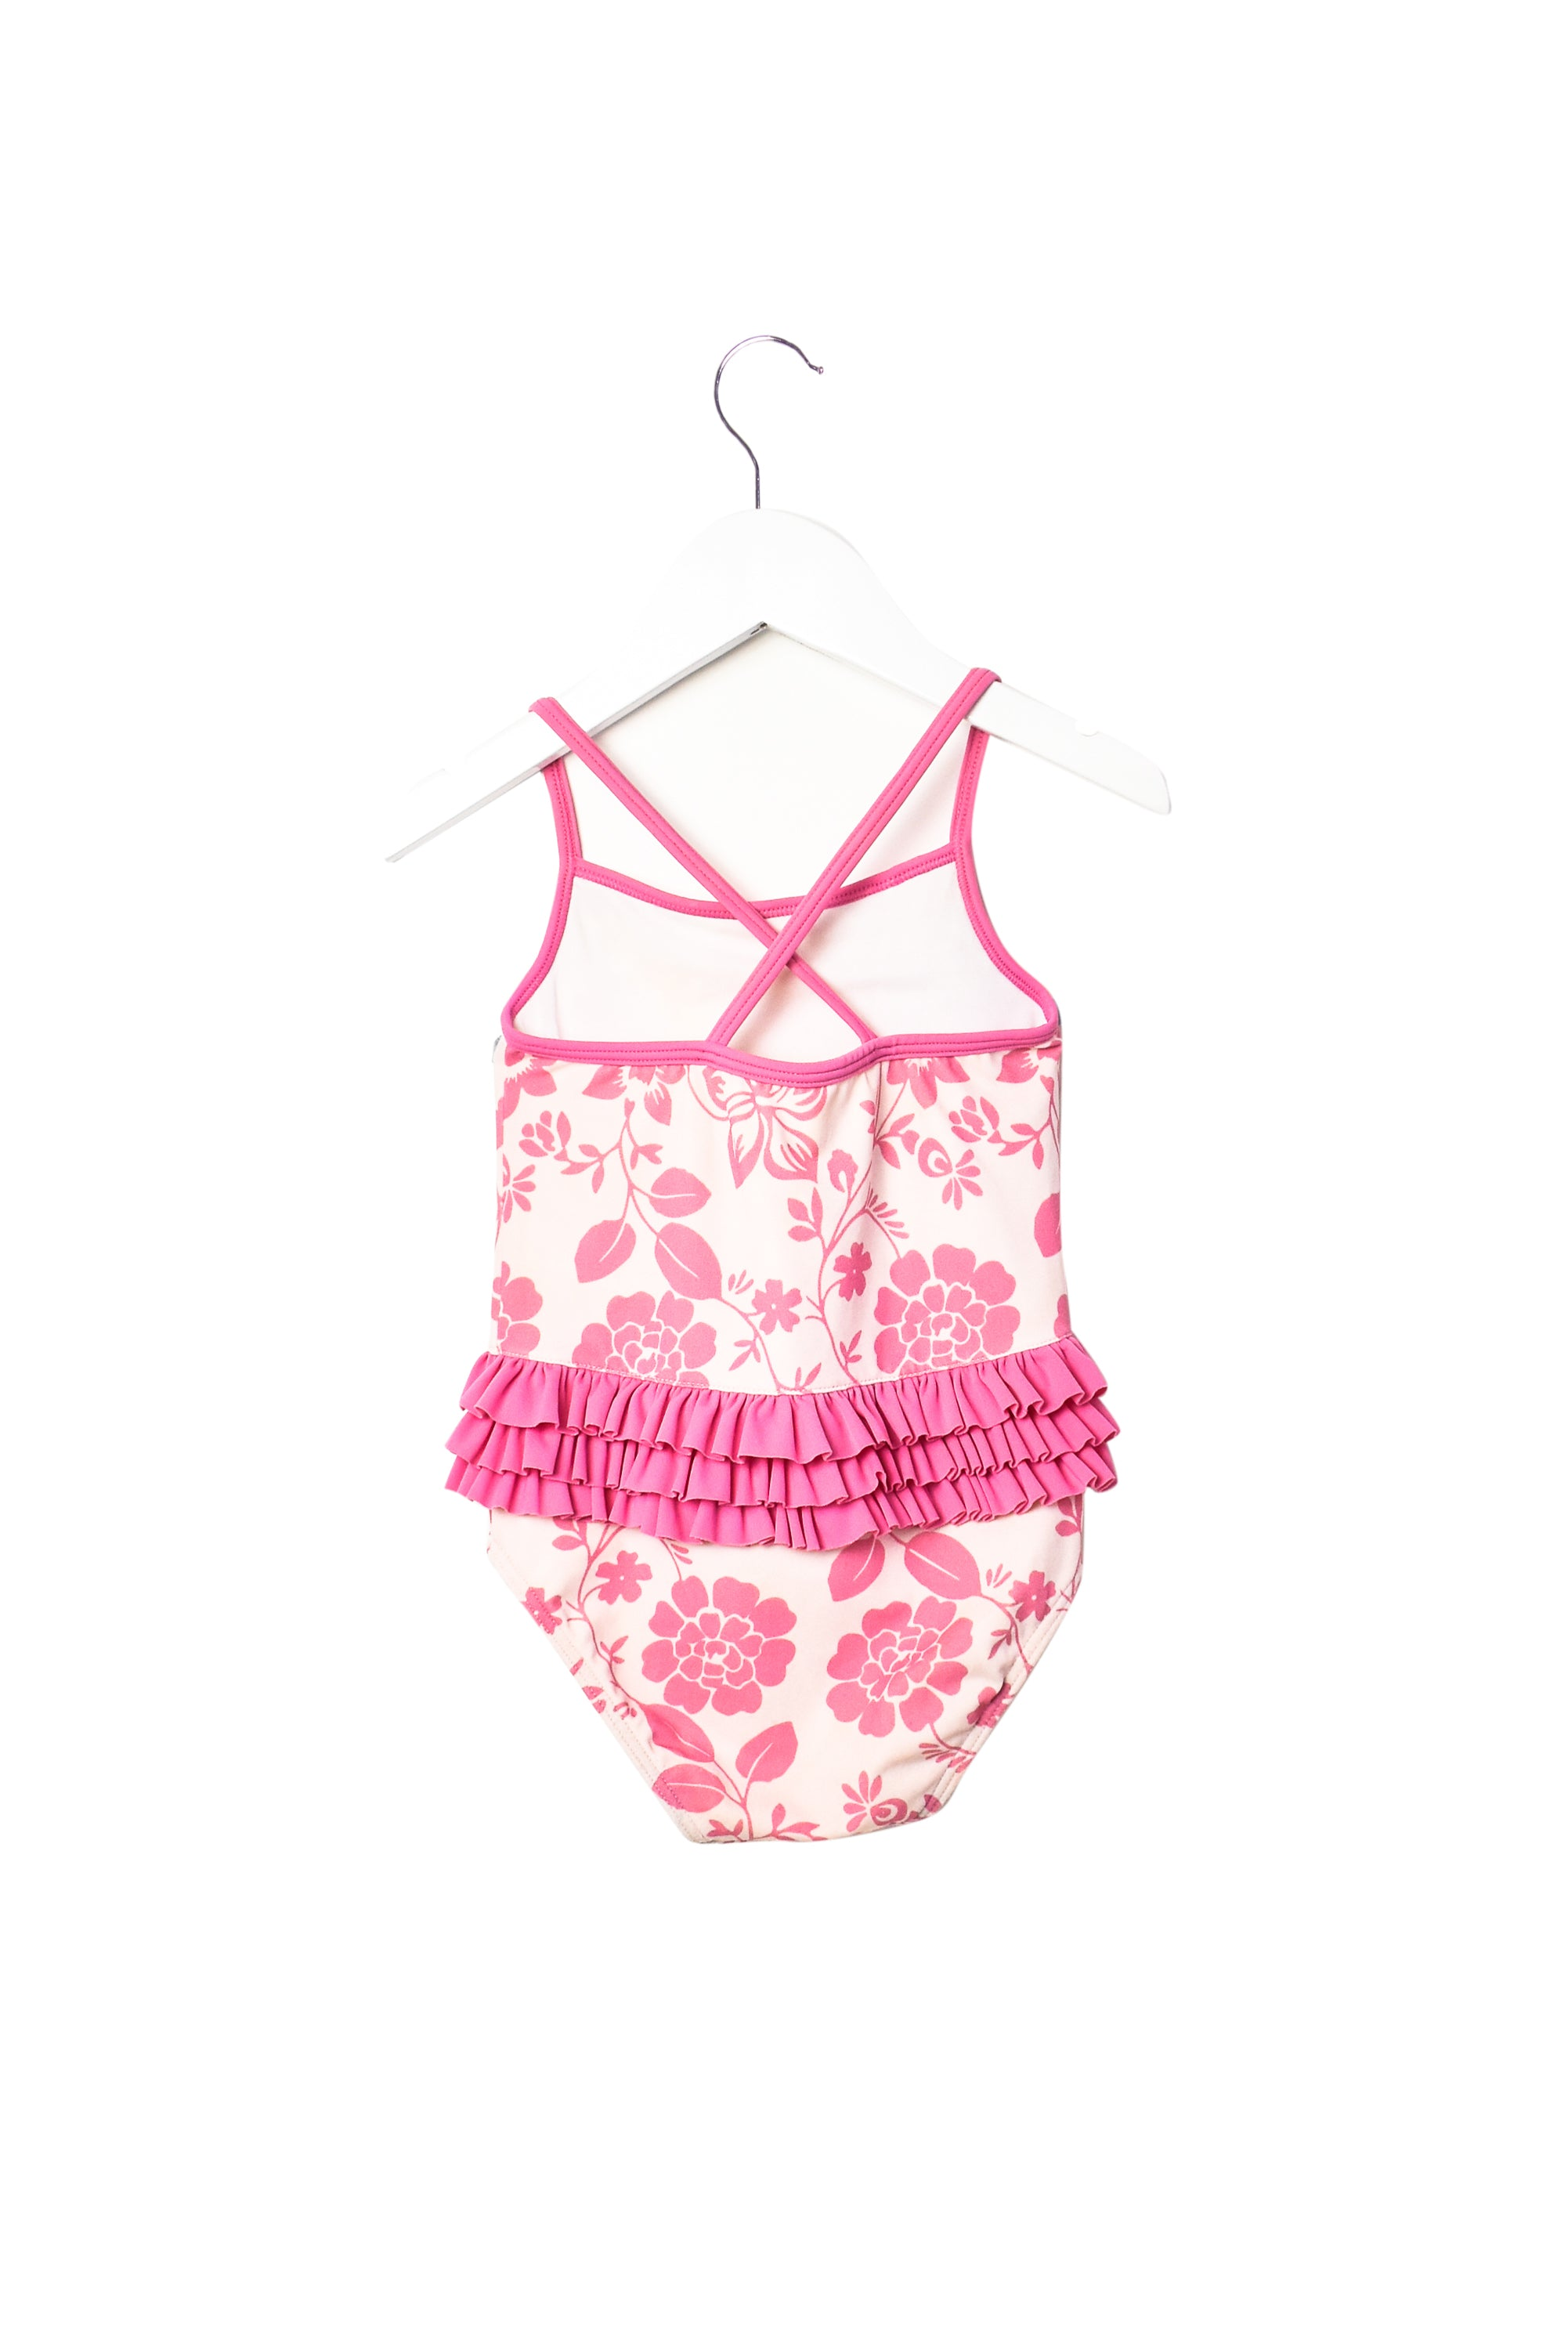 10006443 The Little White Company Kids~Swimwear 3-4T at Retykle